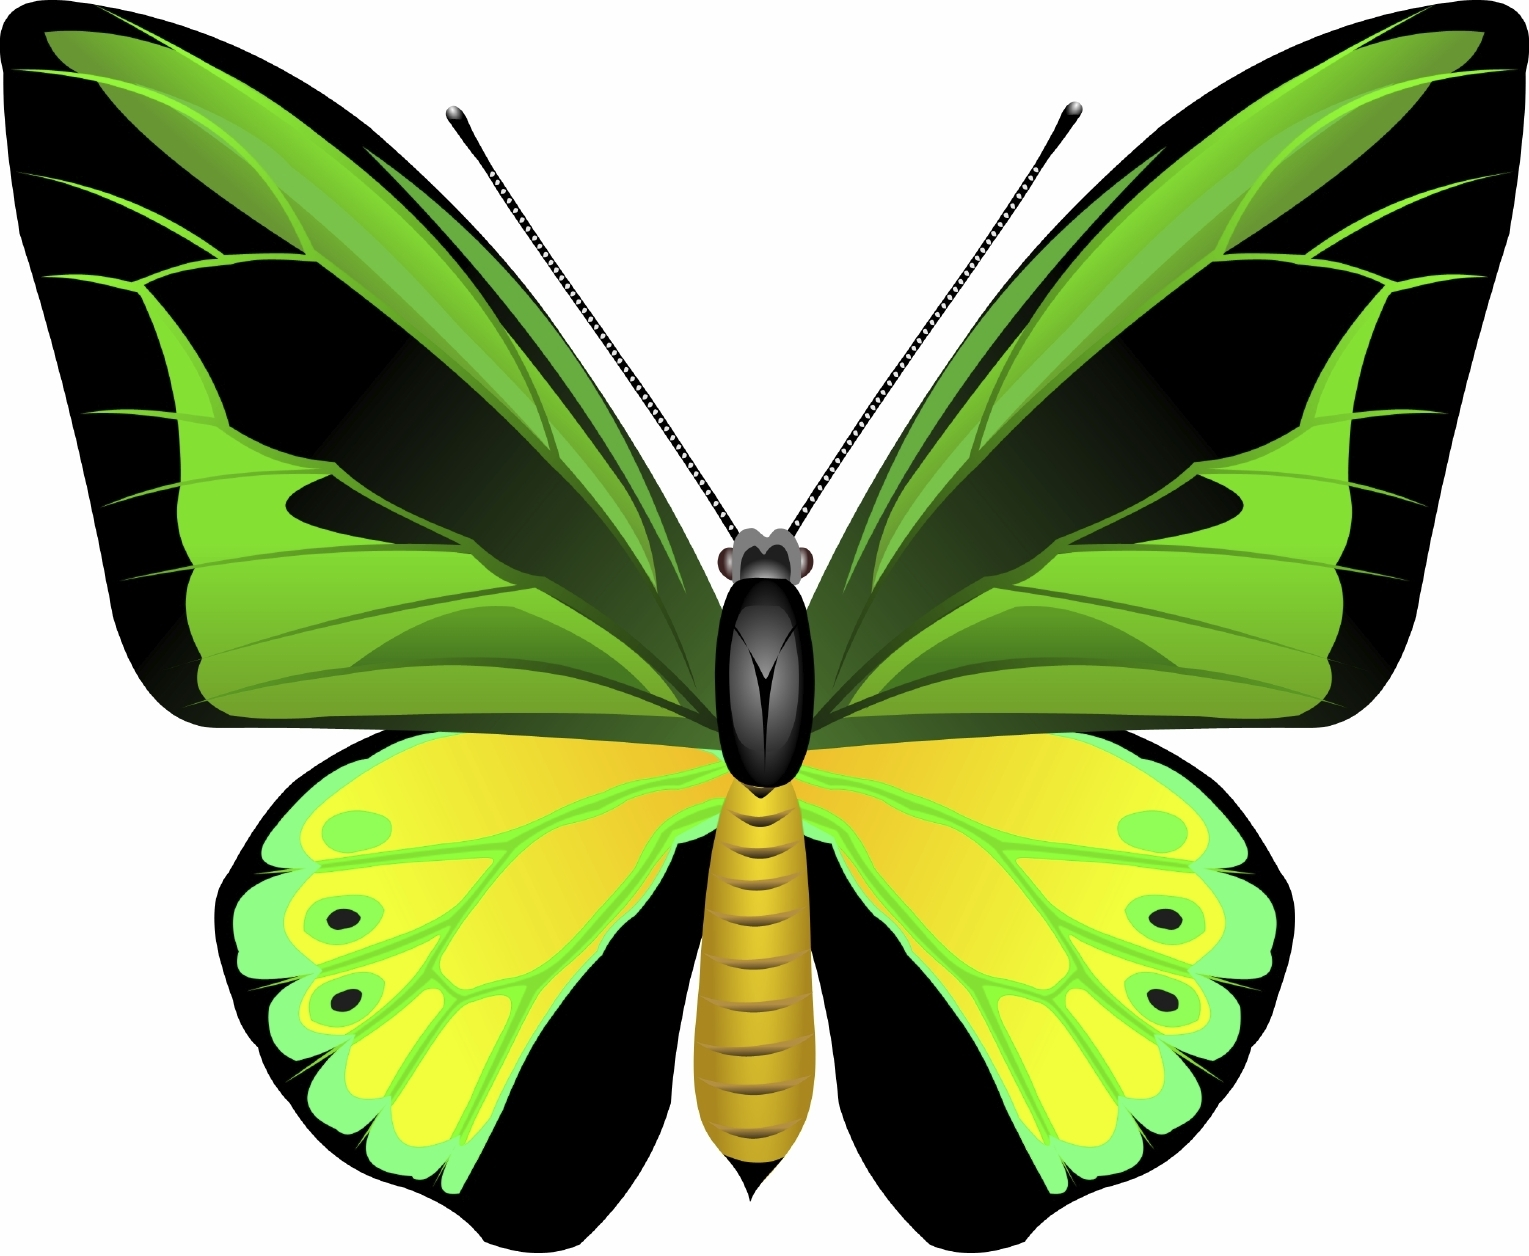 Butterfly biodiveristy offsetting